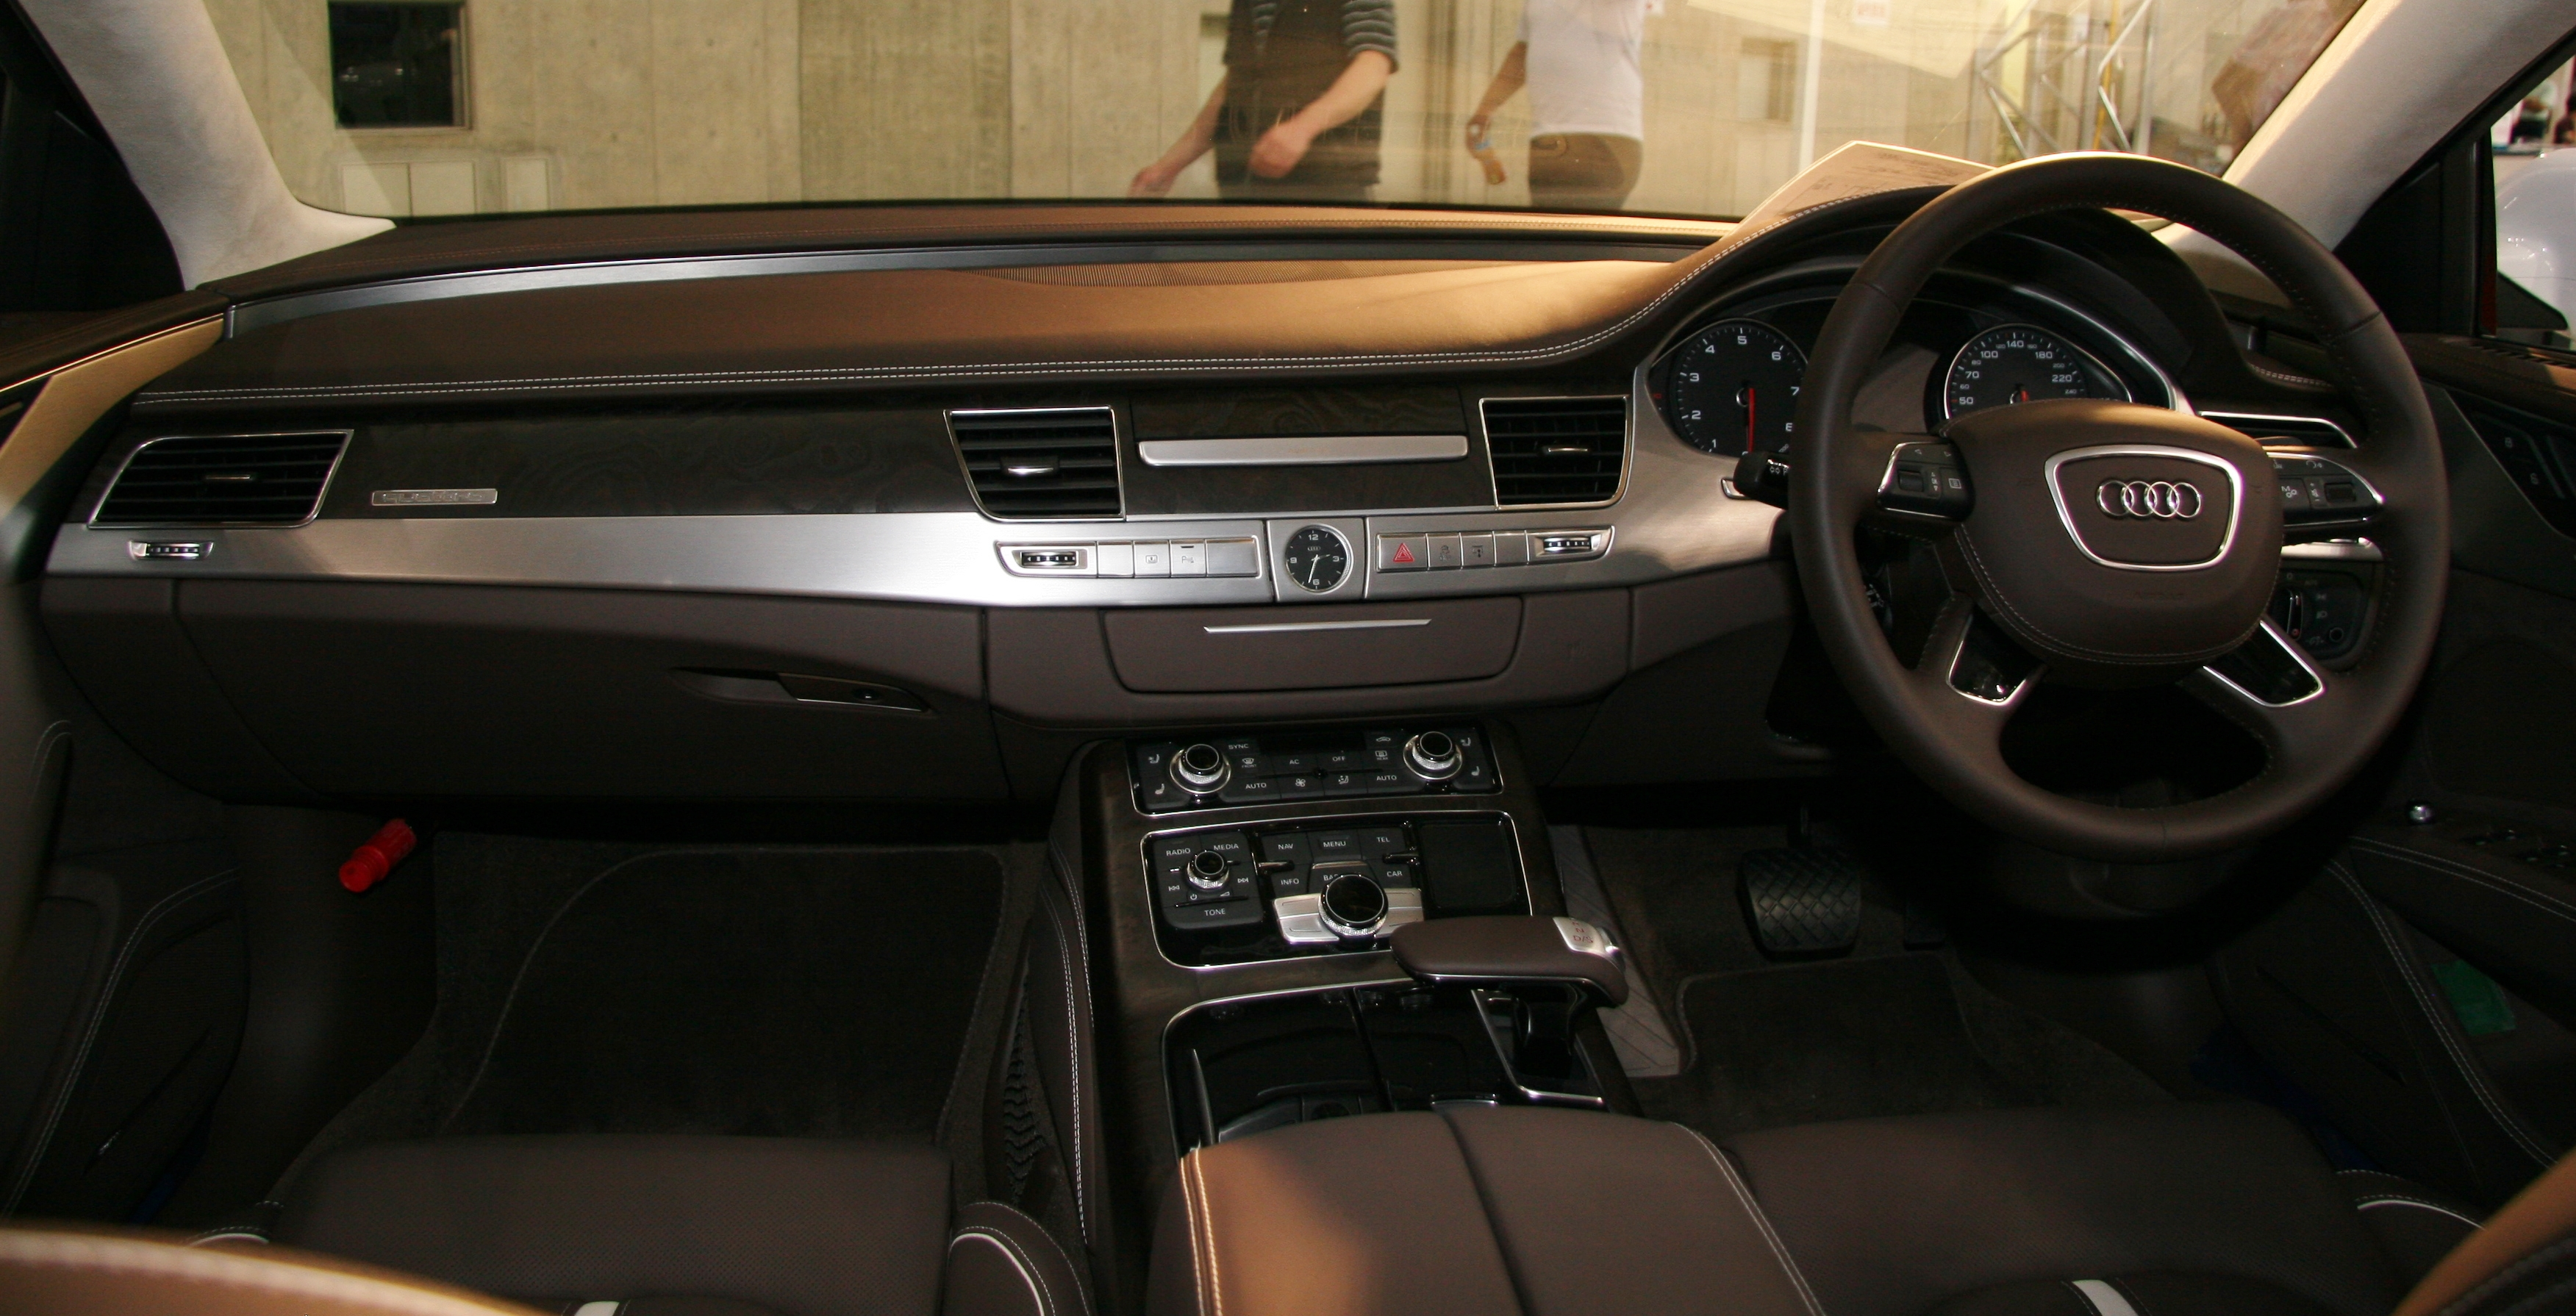 File Audi A8 D4 Interior Jpg Wikimedia Commons